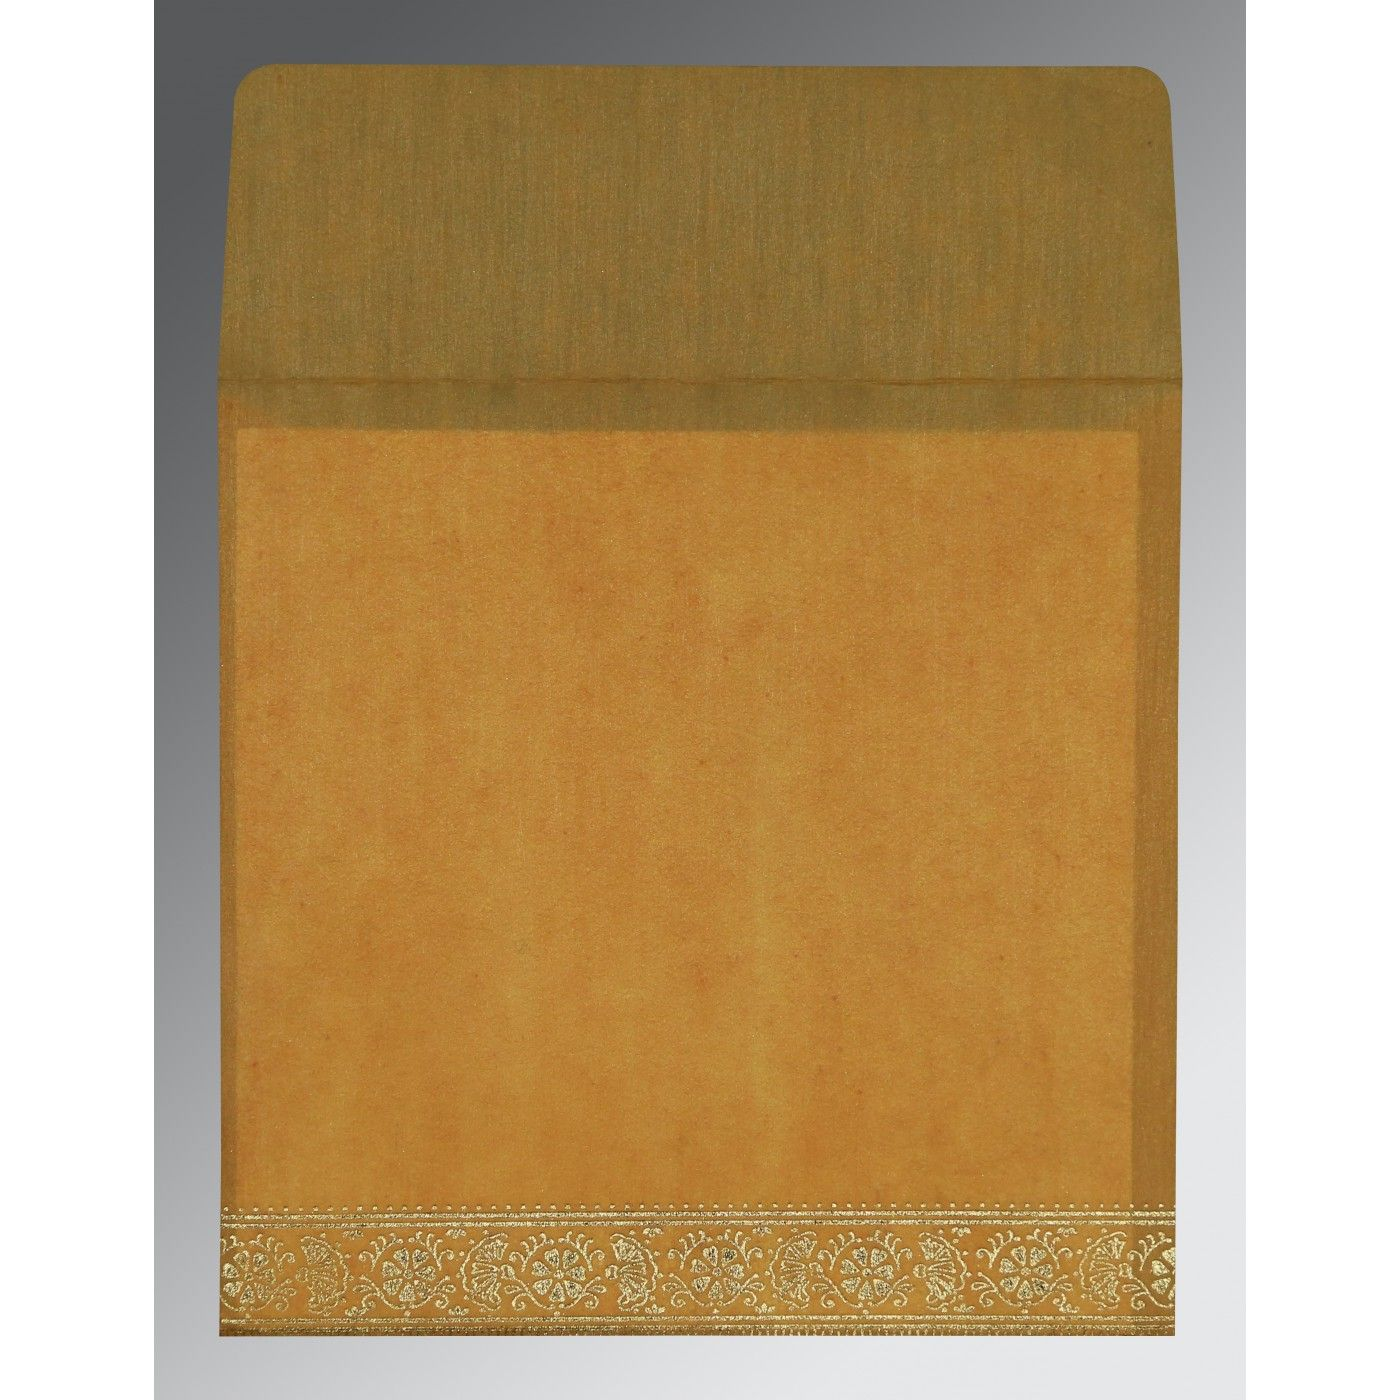 COPPER WOOLY FOIL STAMPED WEDDING CARD : CW-8242D - IndianWeddingCards